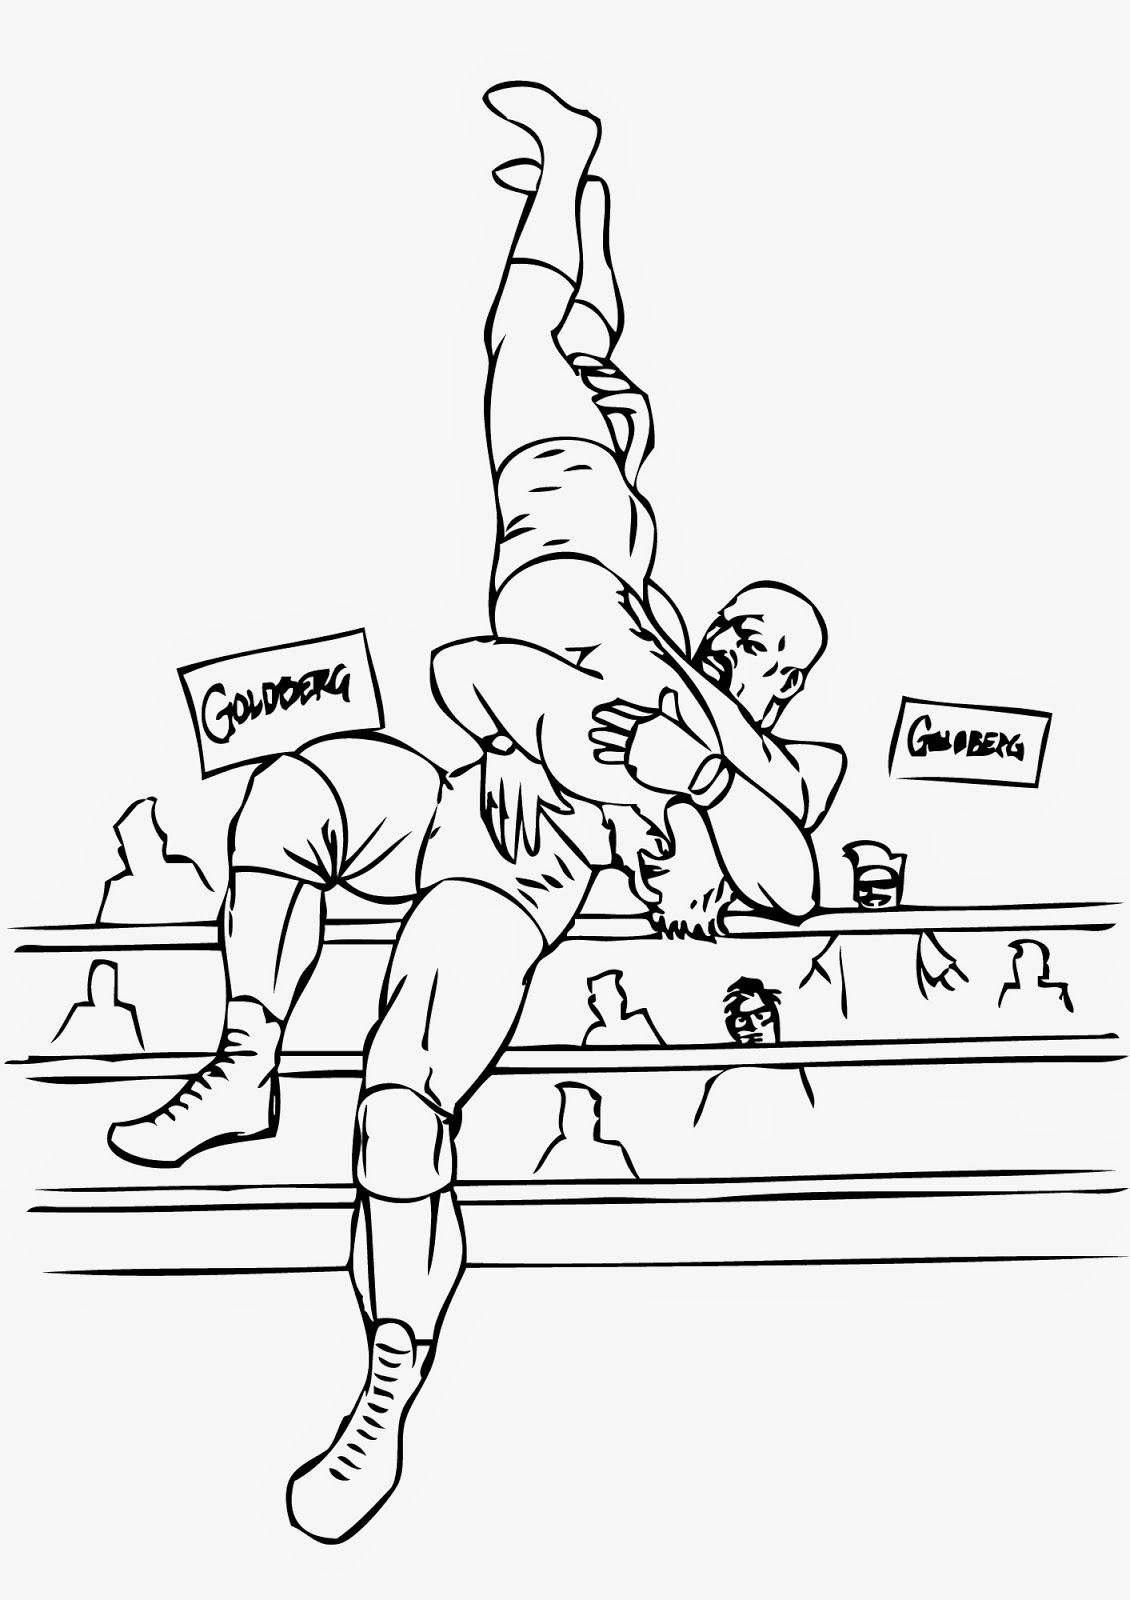 Wwe coloring games online - Wwe Coloring Sheets Is A Part Of Wwe Coloring Pages Pictures Gallery